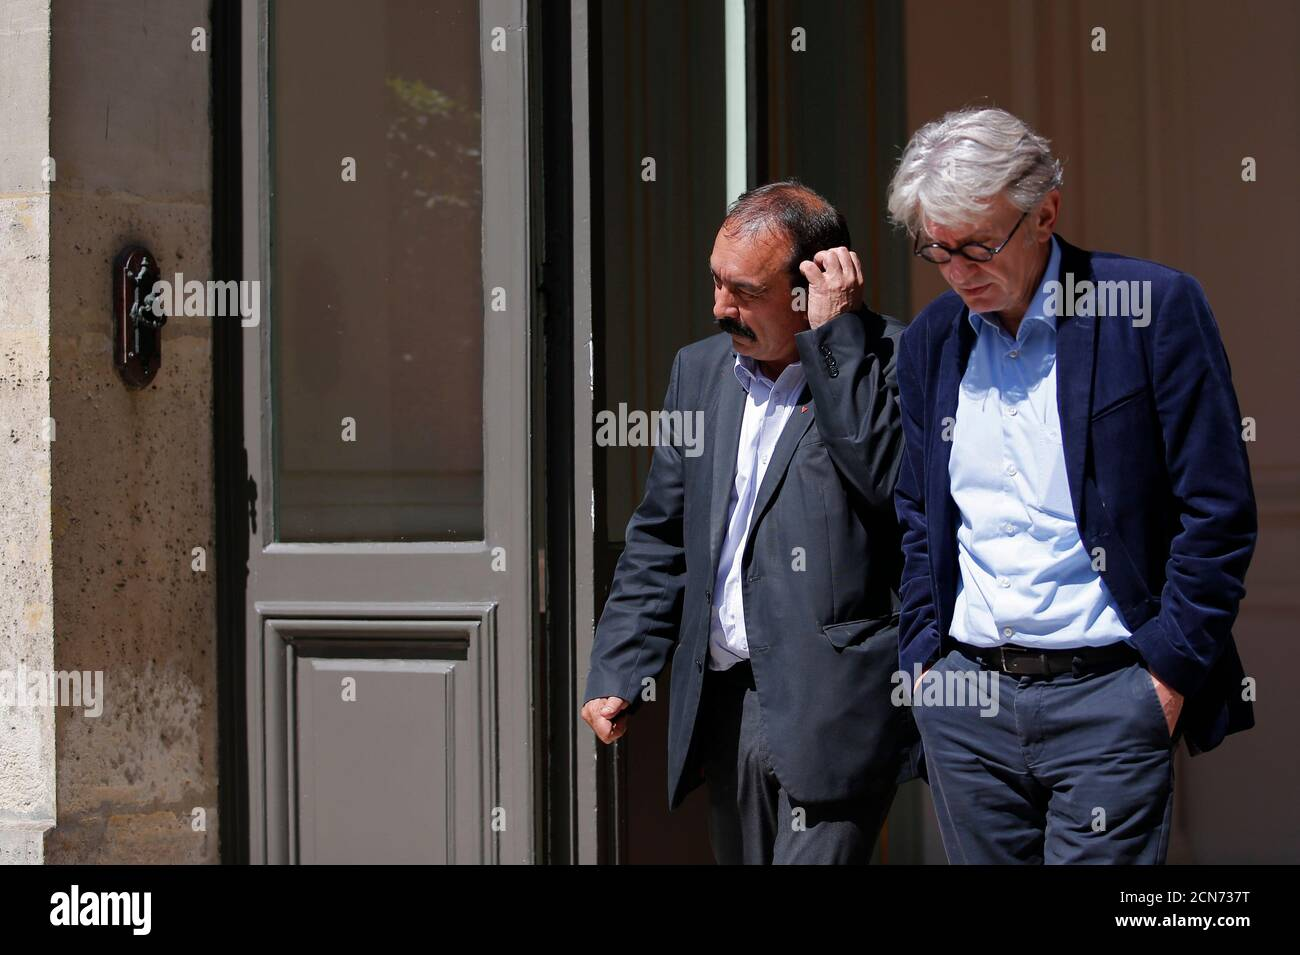 French Force Ouvriere (FO) labour union General Secretary Jean-Claude Mailly (R) and French CGT trade union head Philippe Martinez leave after a meeting with the Interior minister in Paris, France, June 22, 2016 after French police banned a planned demonstration this week against labour reforms, bringing to a head a stand-off between the government and trade unions which have been spearheading protests against the changes for months.   REUTERS/Stephane Mahe Foto de stock